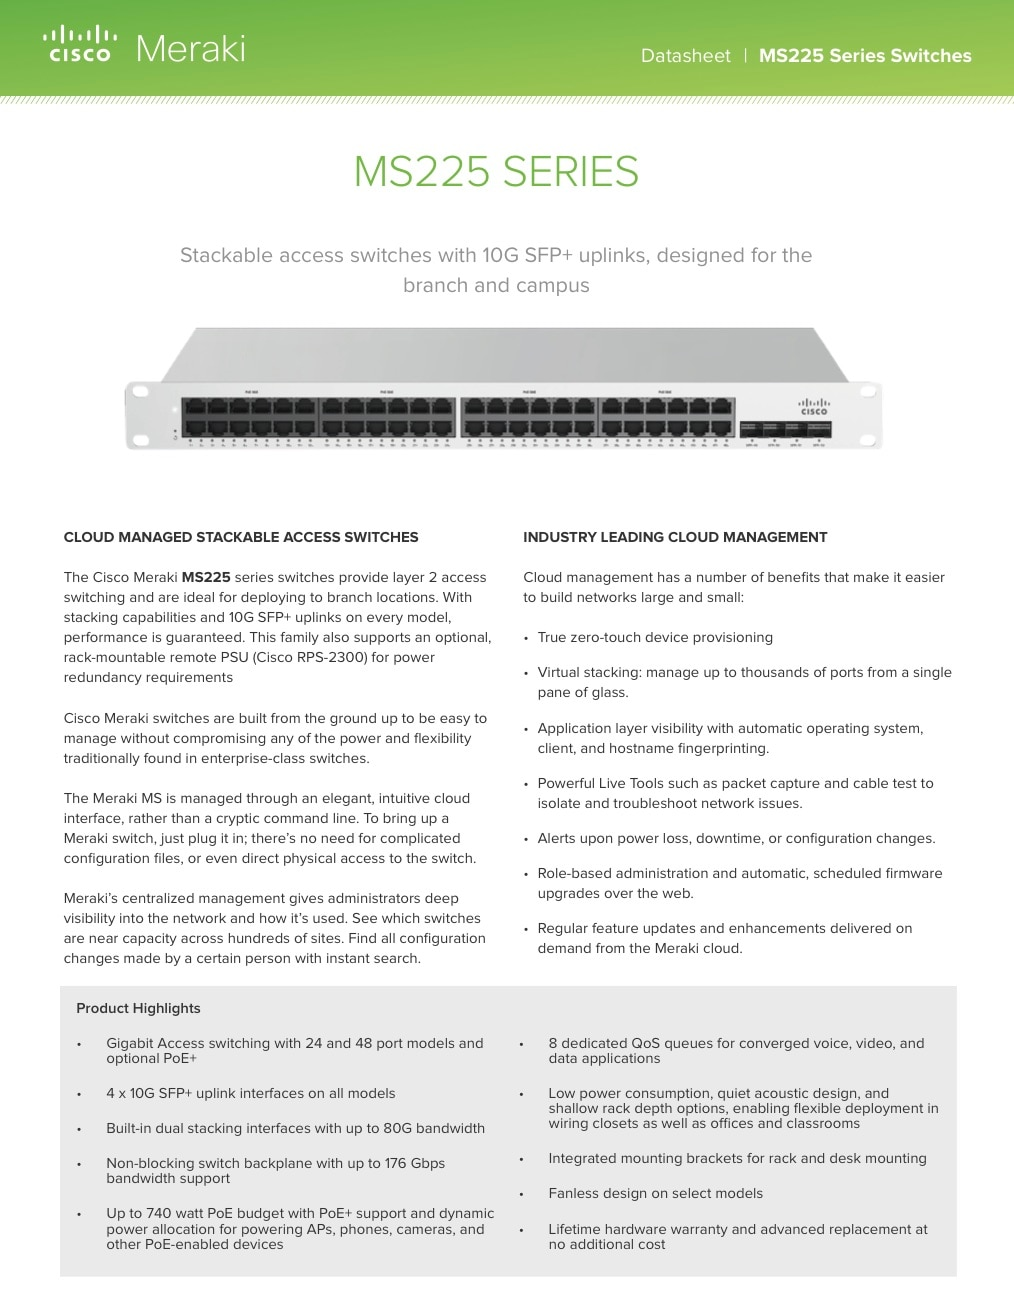 Cisco Meraki Library Datasheets Whitepapers Product Images Pic1 Network Diagram Lan Fault Tolerance System Ms210 Series Datasheet Ms225